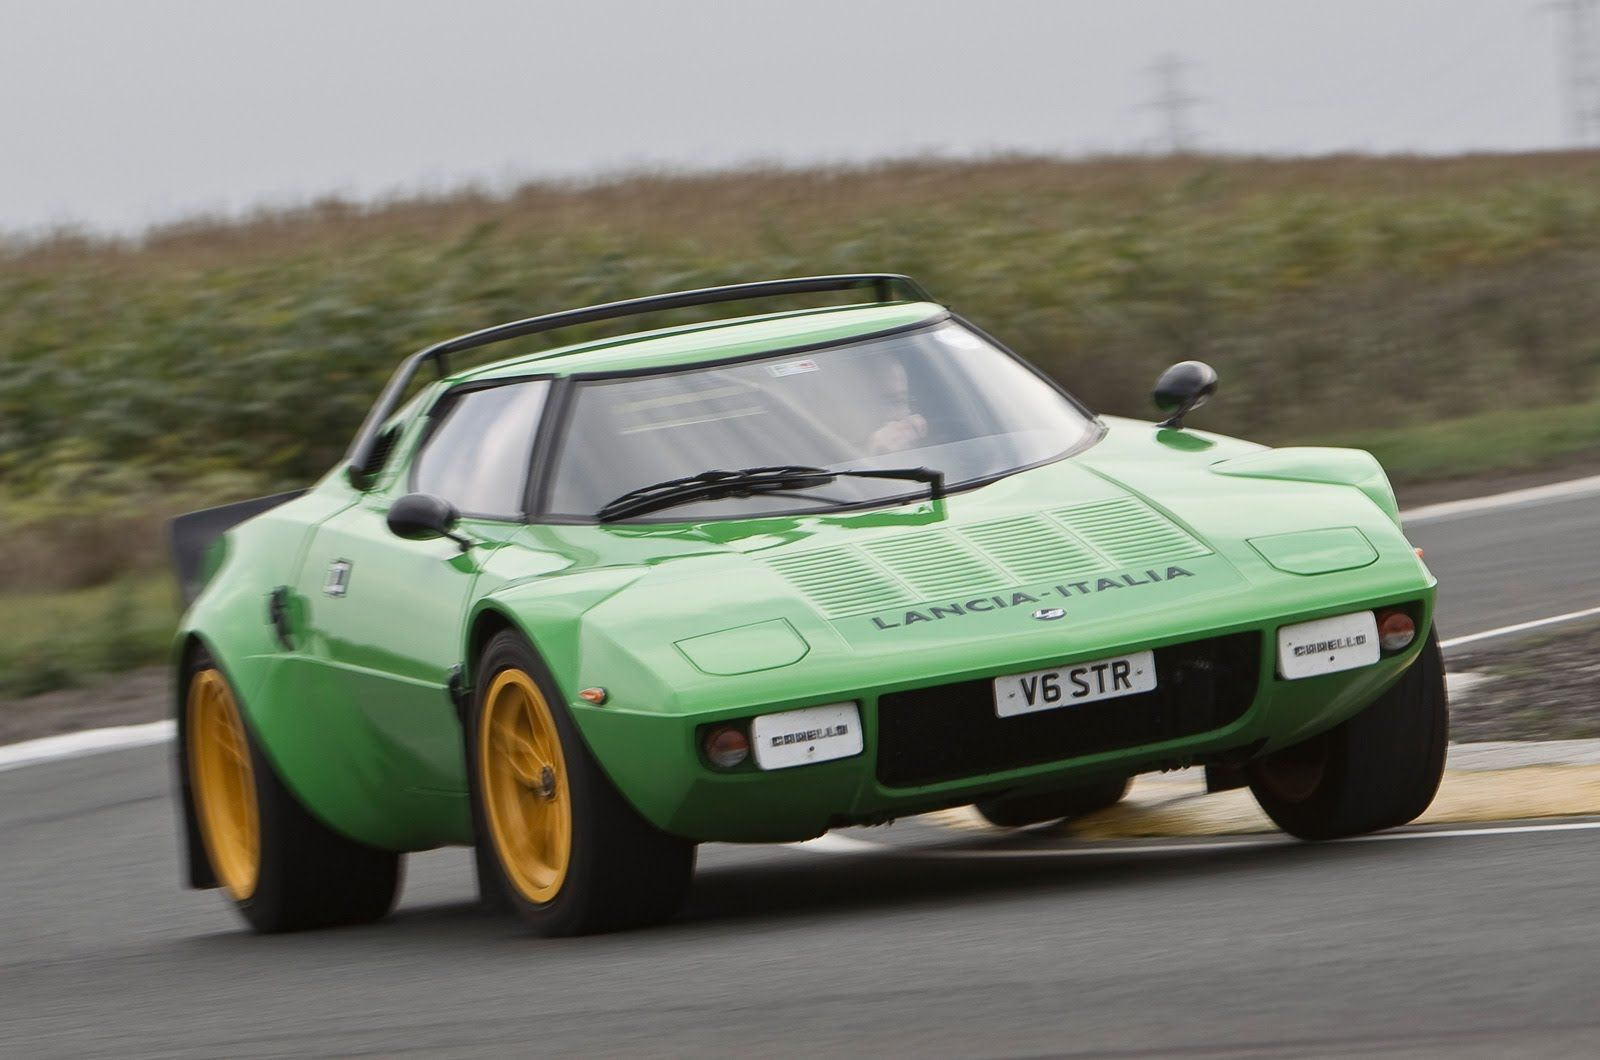 Image view lister bell lancia stratos replica cars pinterest image view lister bell lancia stratos replica cars pinterest cars and wheels vanachro Images